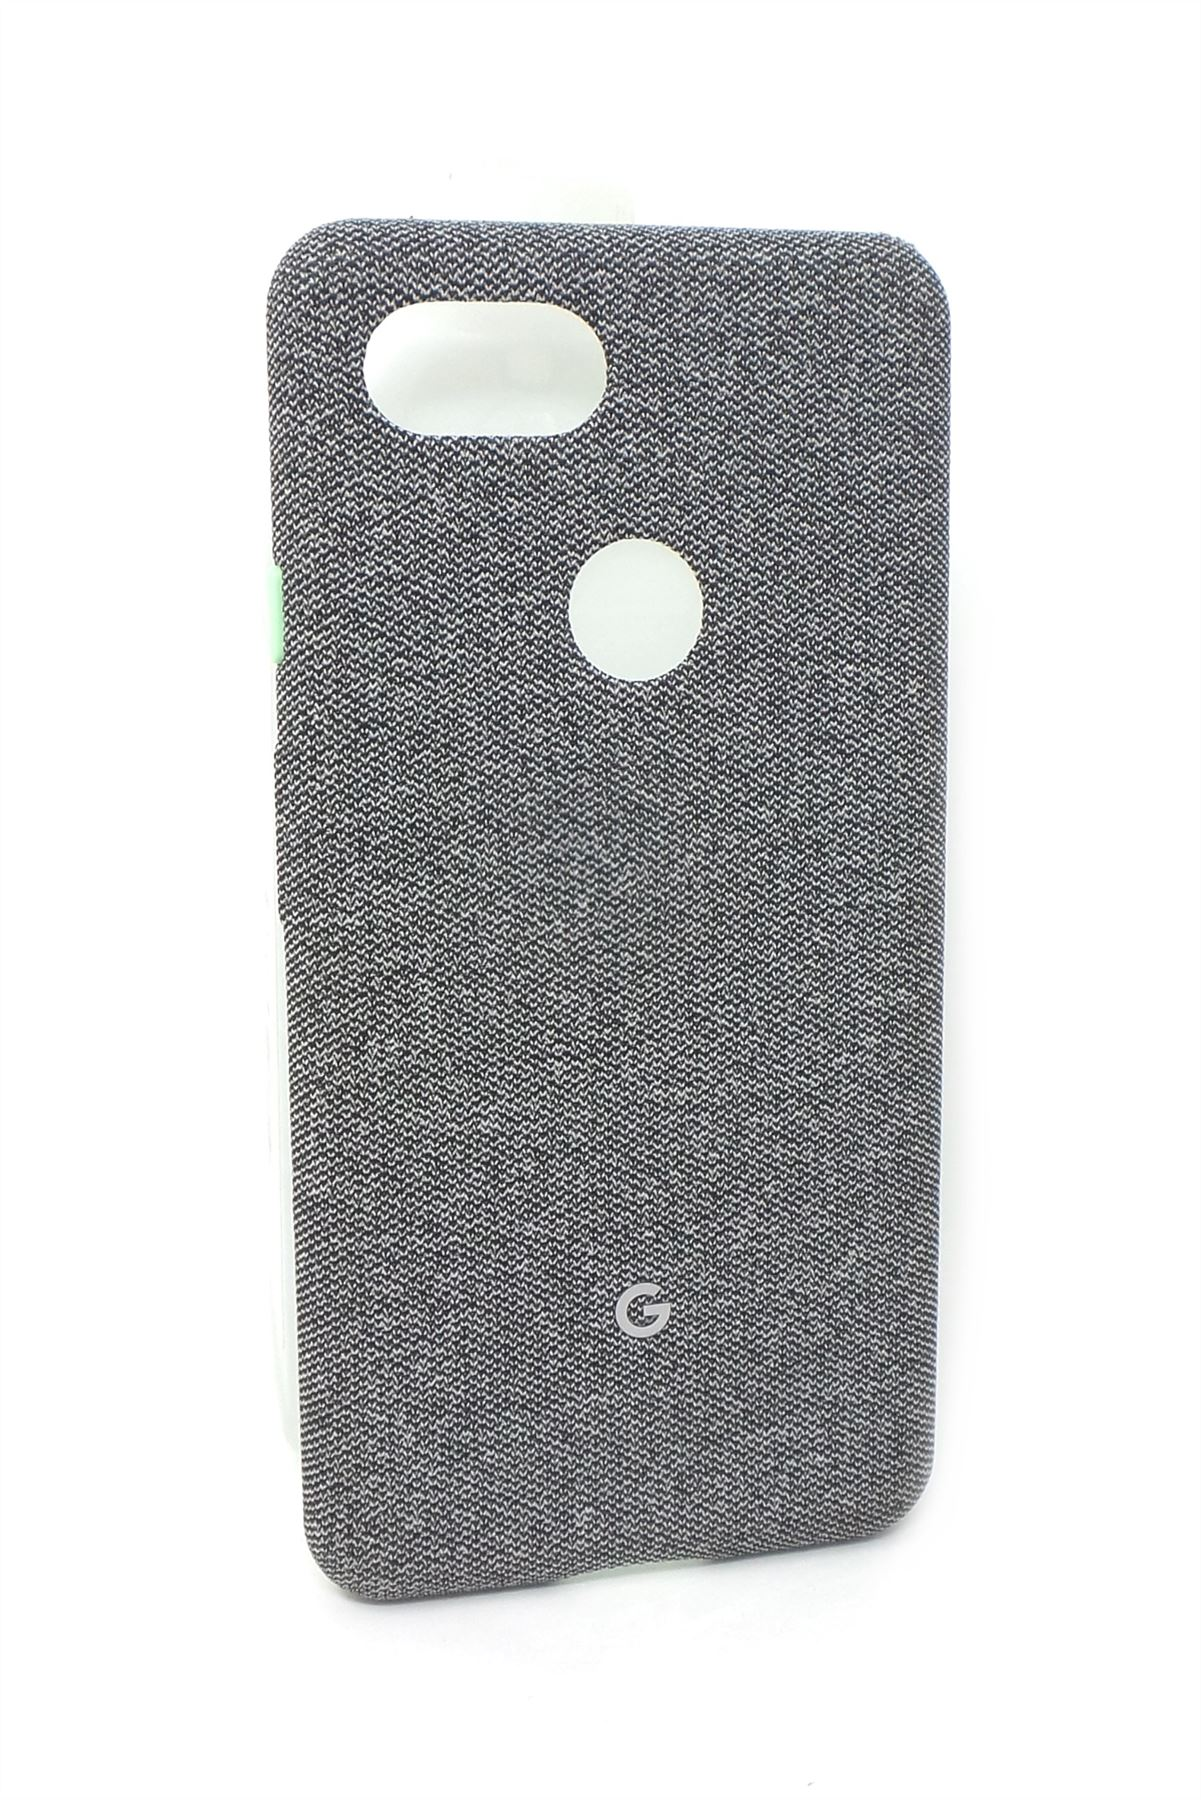 wholesale dealer e5207 4fded Details about Google Protective Fabric Case for Google Pixel 3 XL Fog  Fabric GA00498